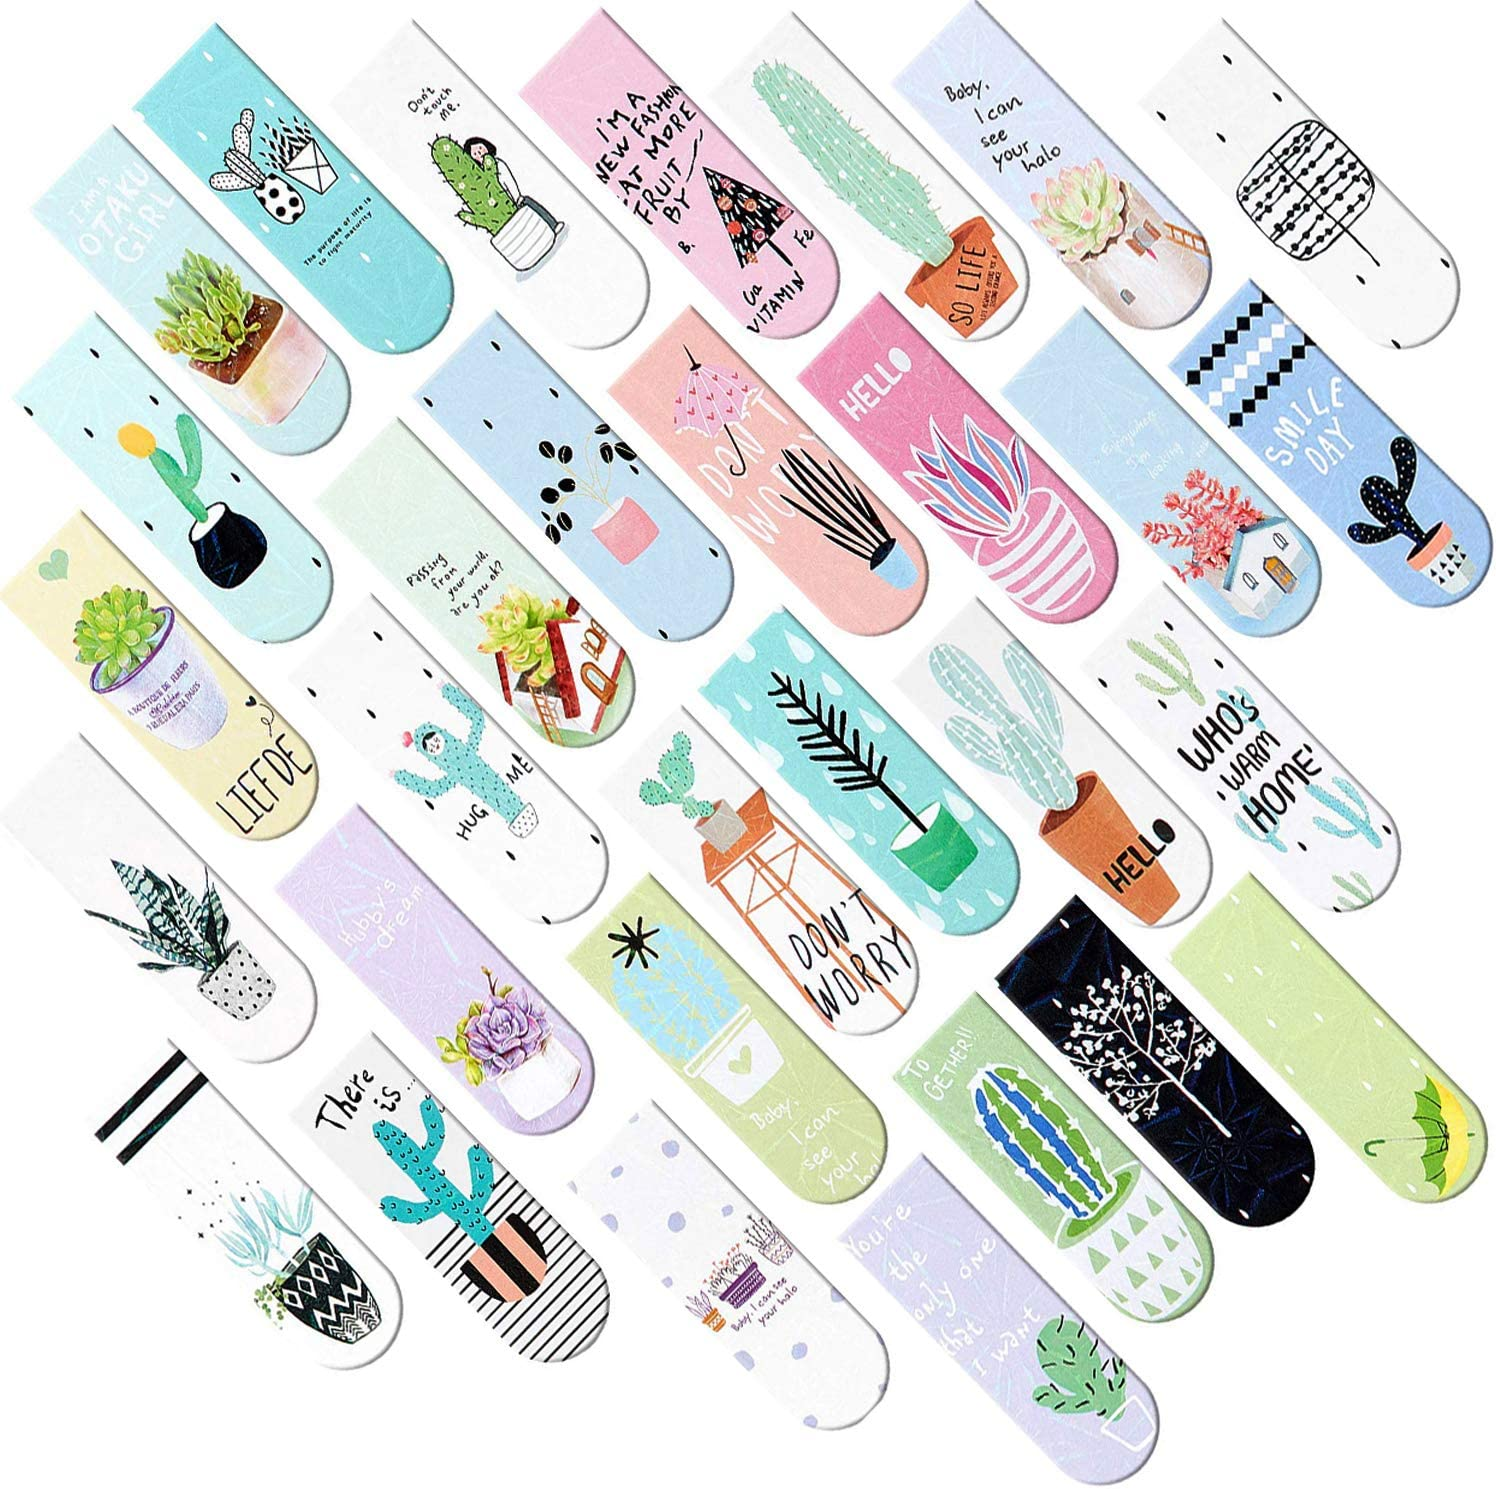 Focushop 30 Pcs Magnetic Bookmarks Succulen Assorted Cute Special price for a Max 53% OFF limited time Cactus